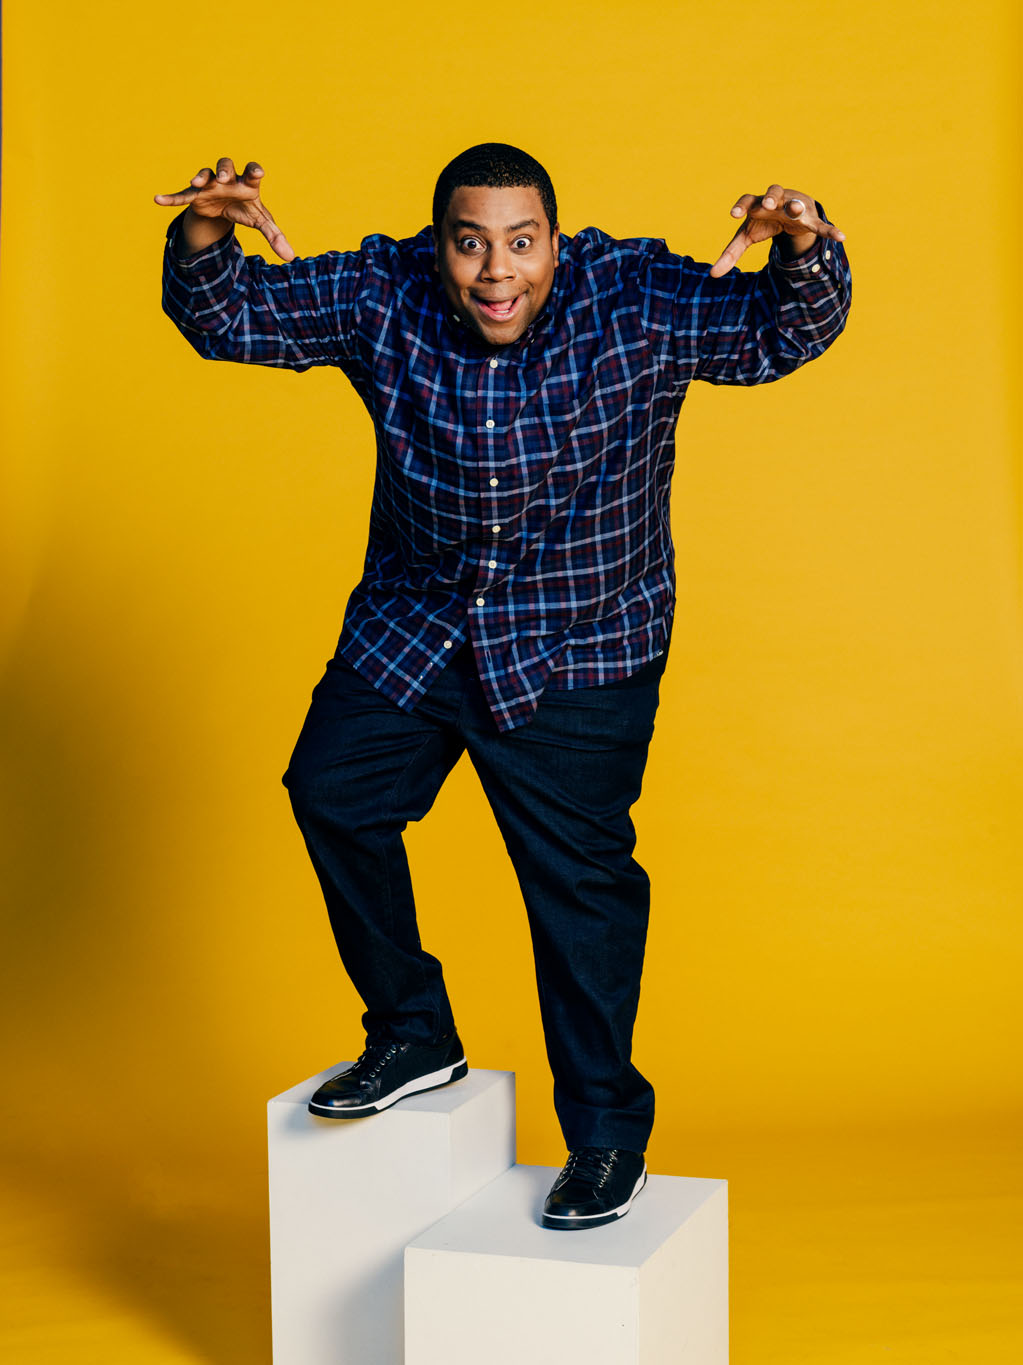 canziani_kenan_thompson_people_0393.jpg